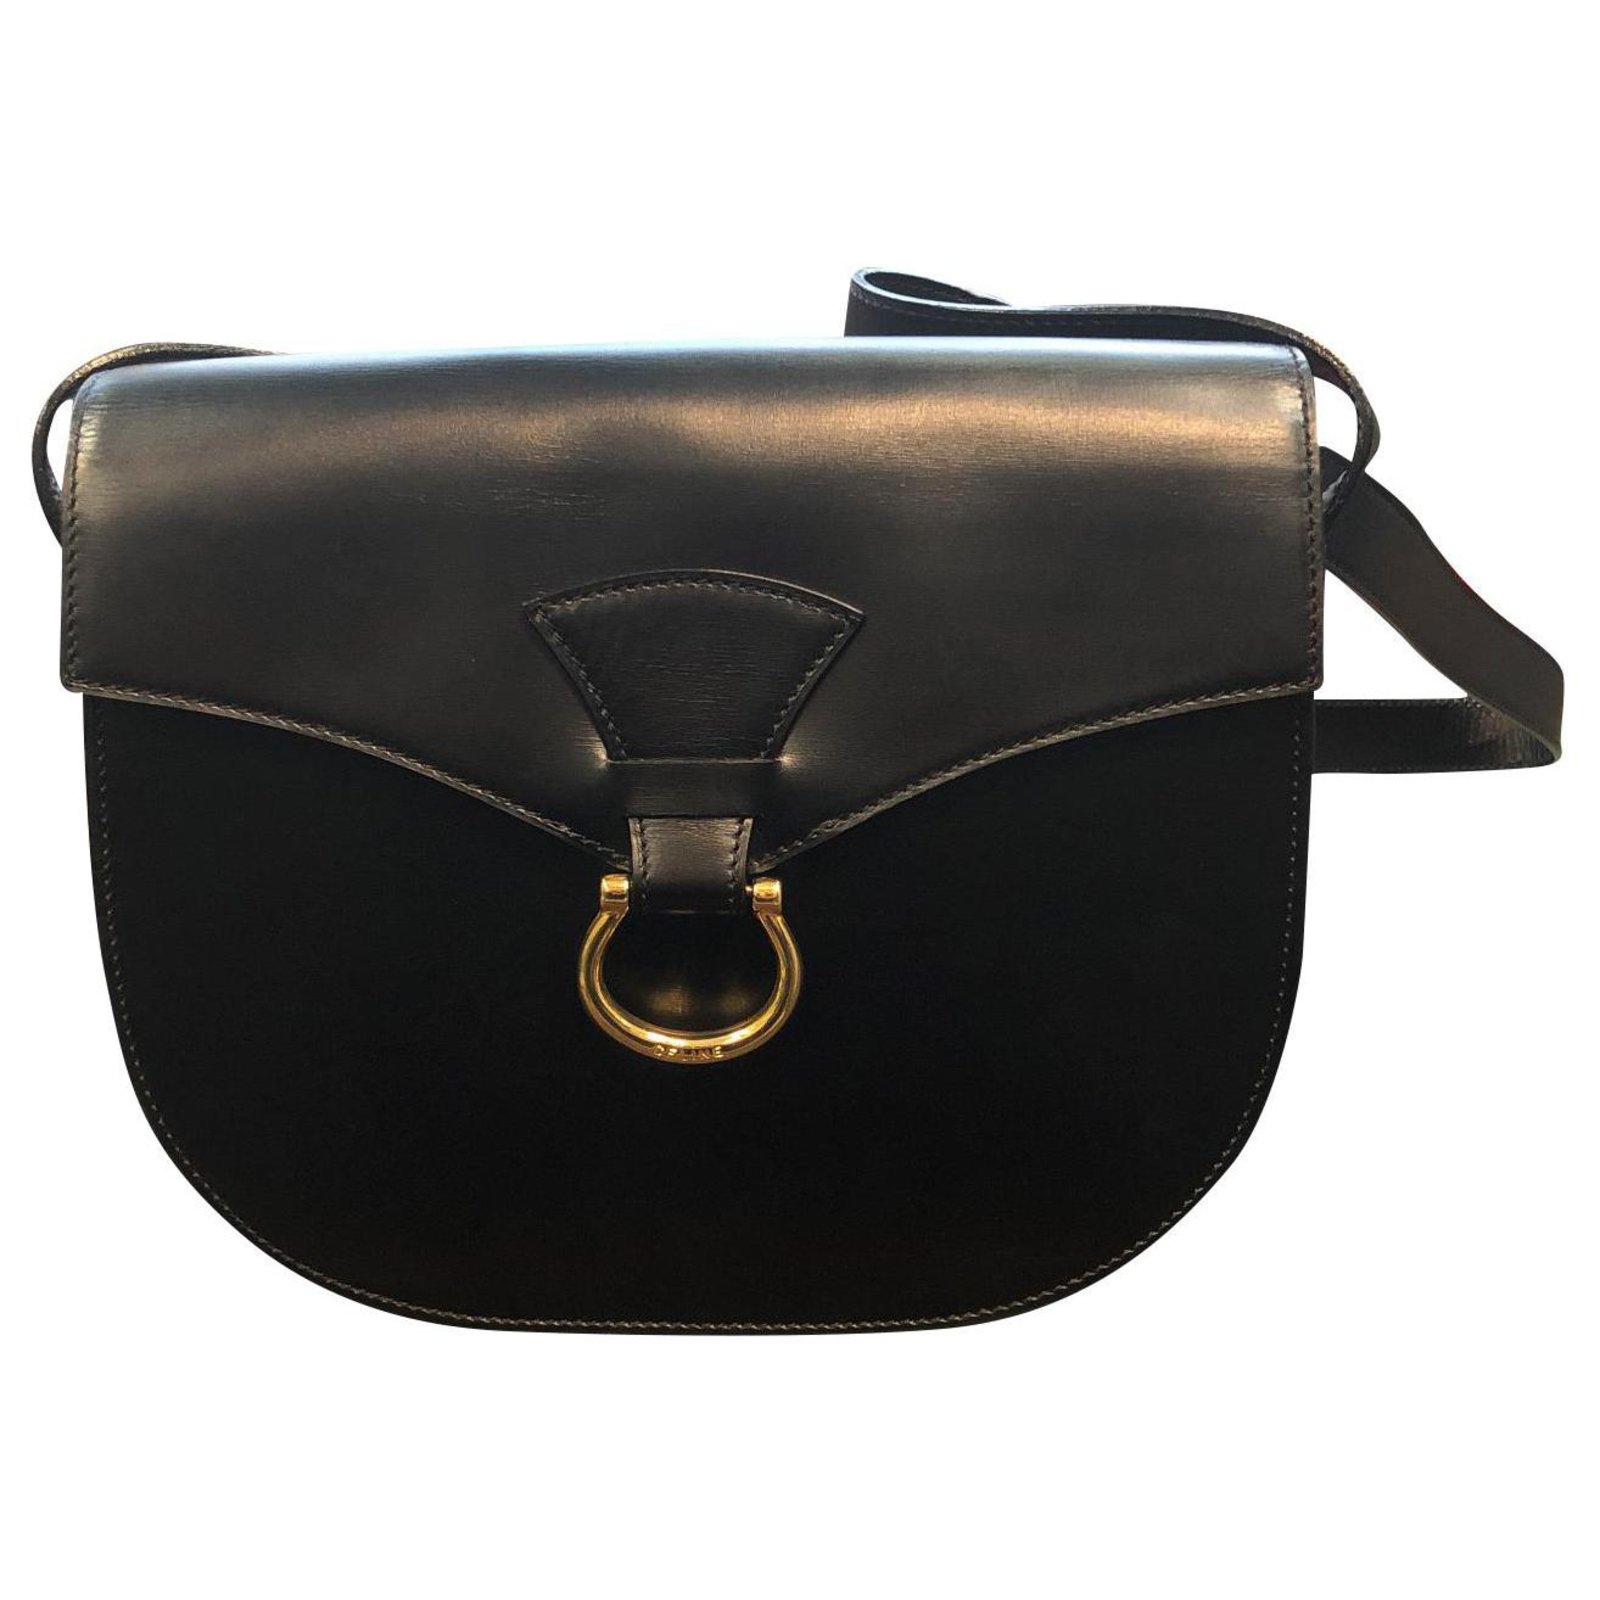 Céline Handbags Leather Black